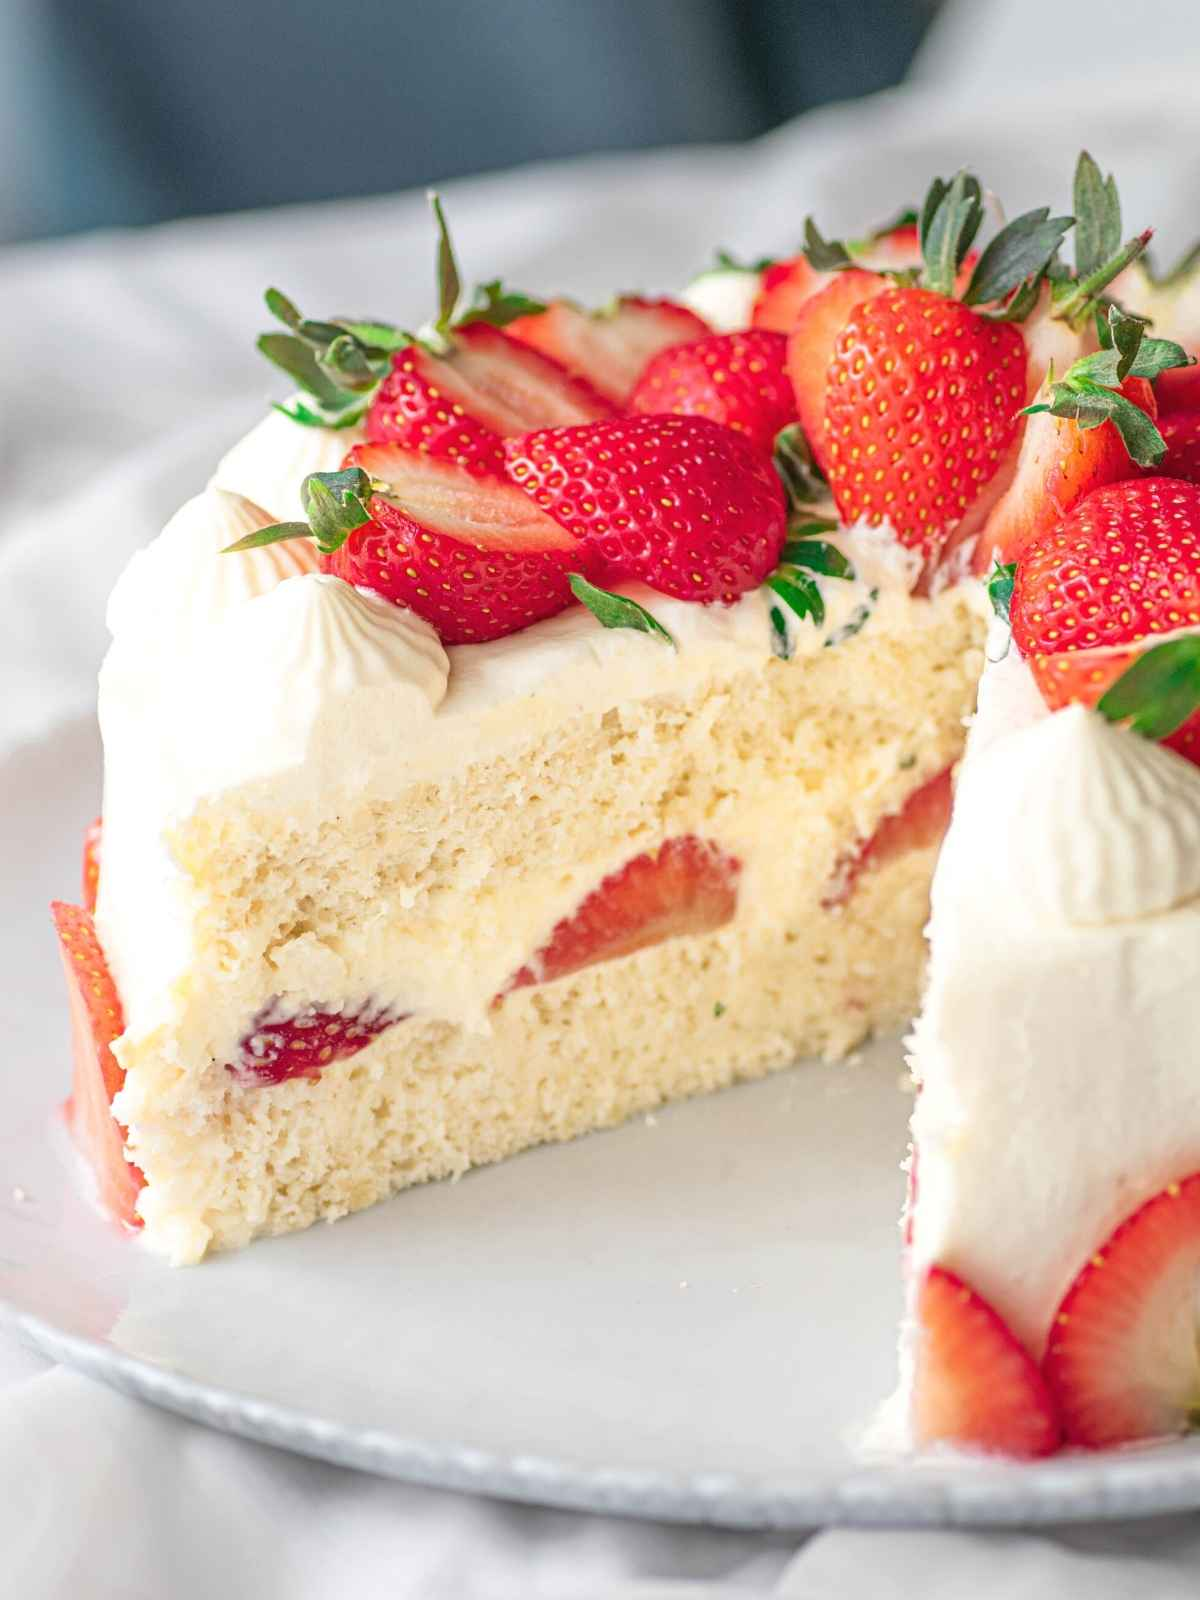 Strawberry shortcake with slice cut out showing inside layers